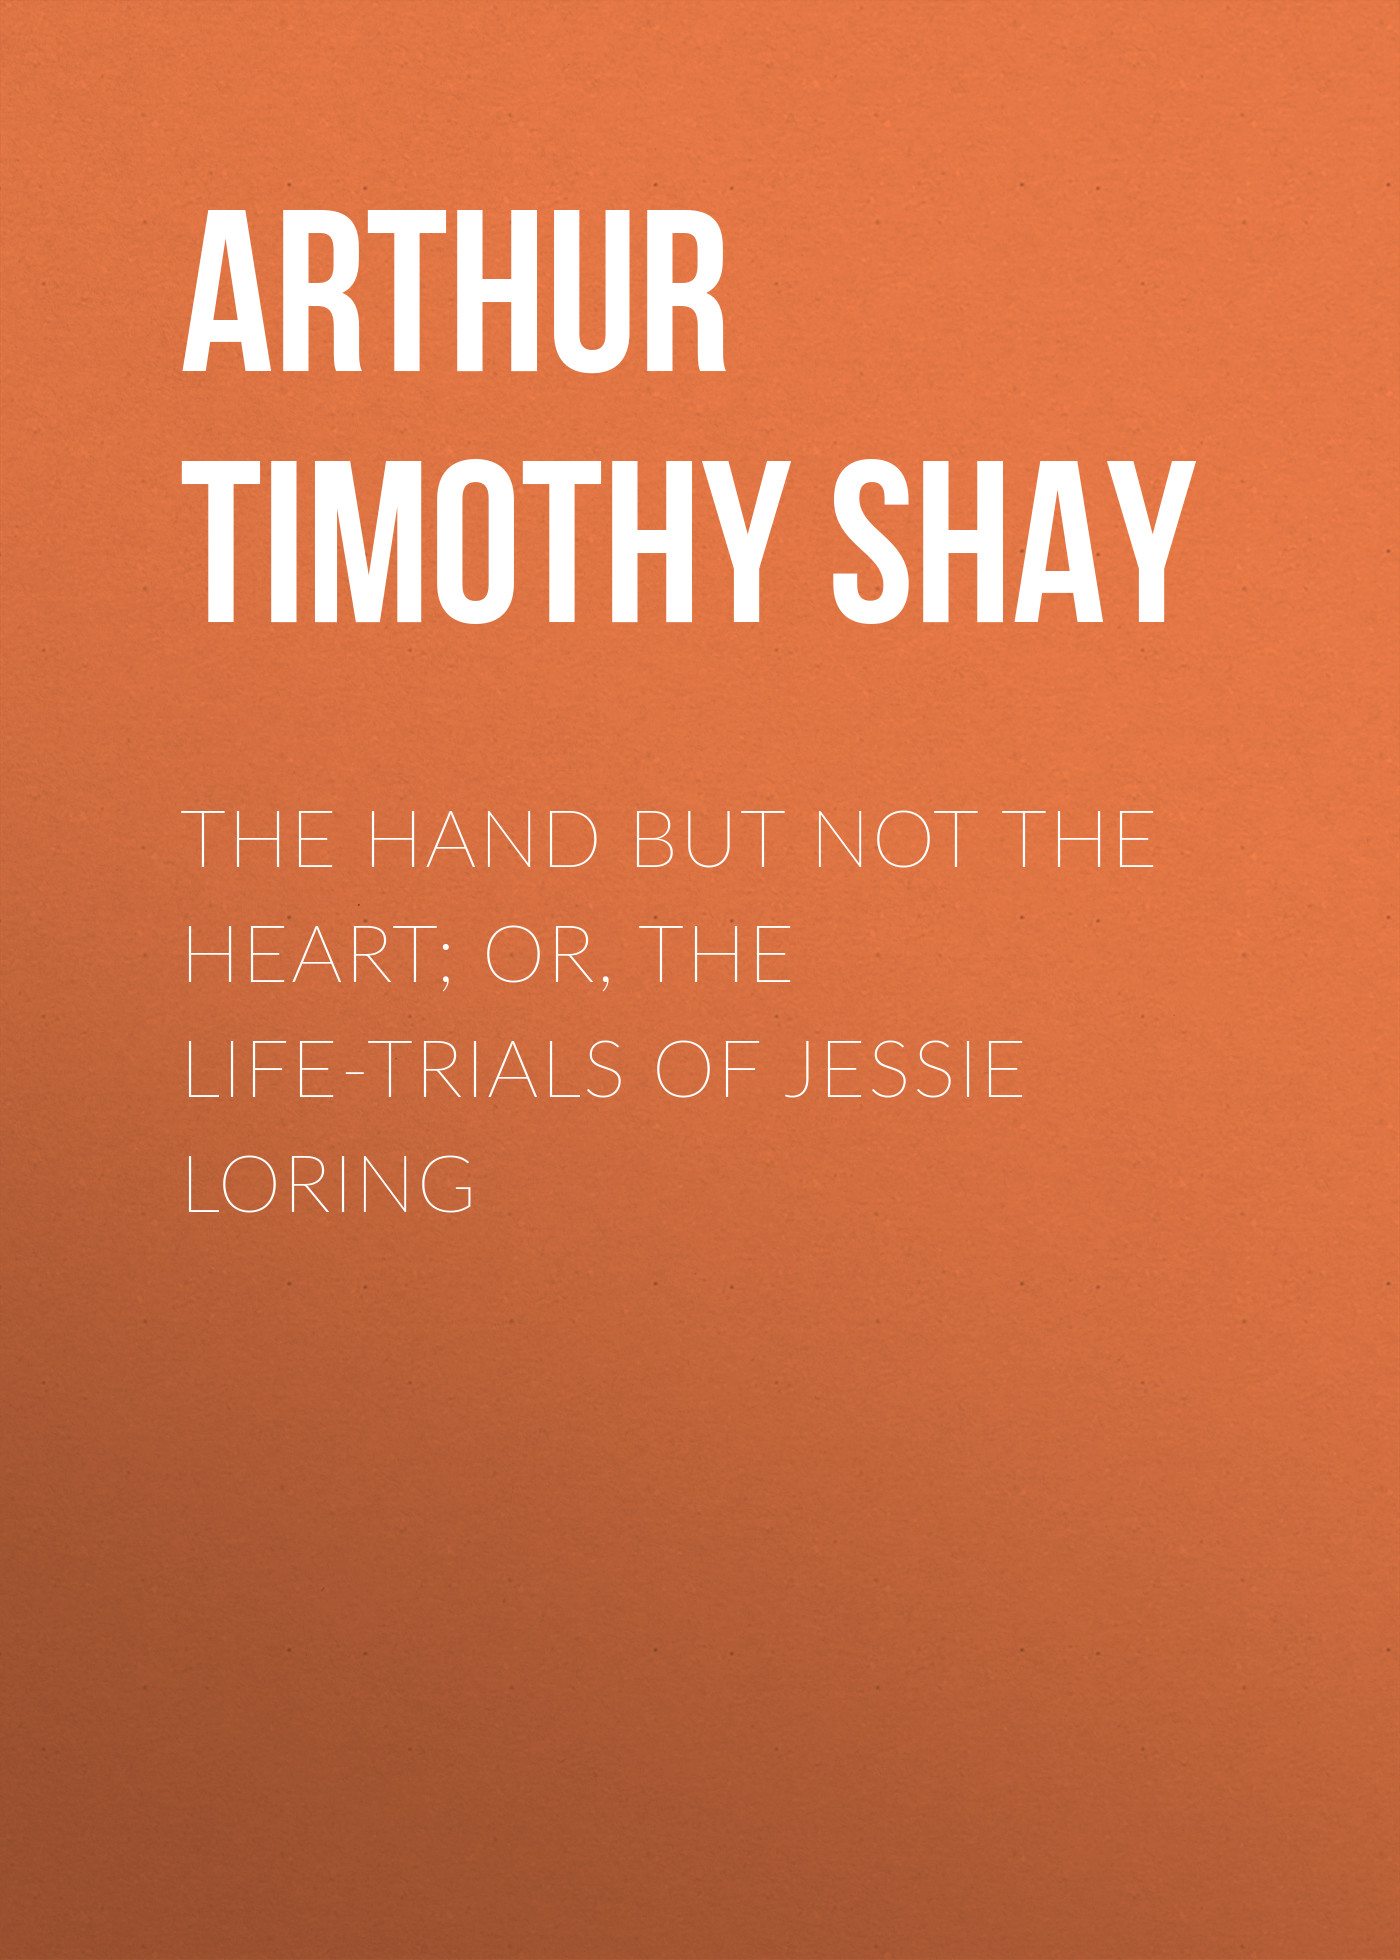 Arthur Timothy Shay The Hand but Not the Heart; Or, The Life-Trials of Jessie Loring arthur timothy shay woman s trials or tales and sketches from the life around us